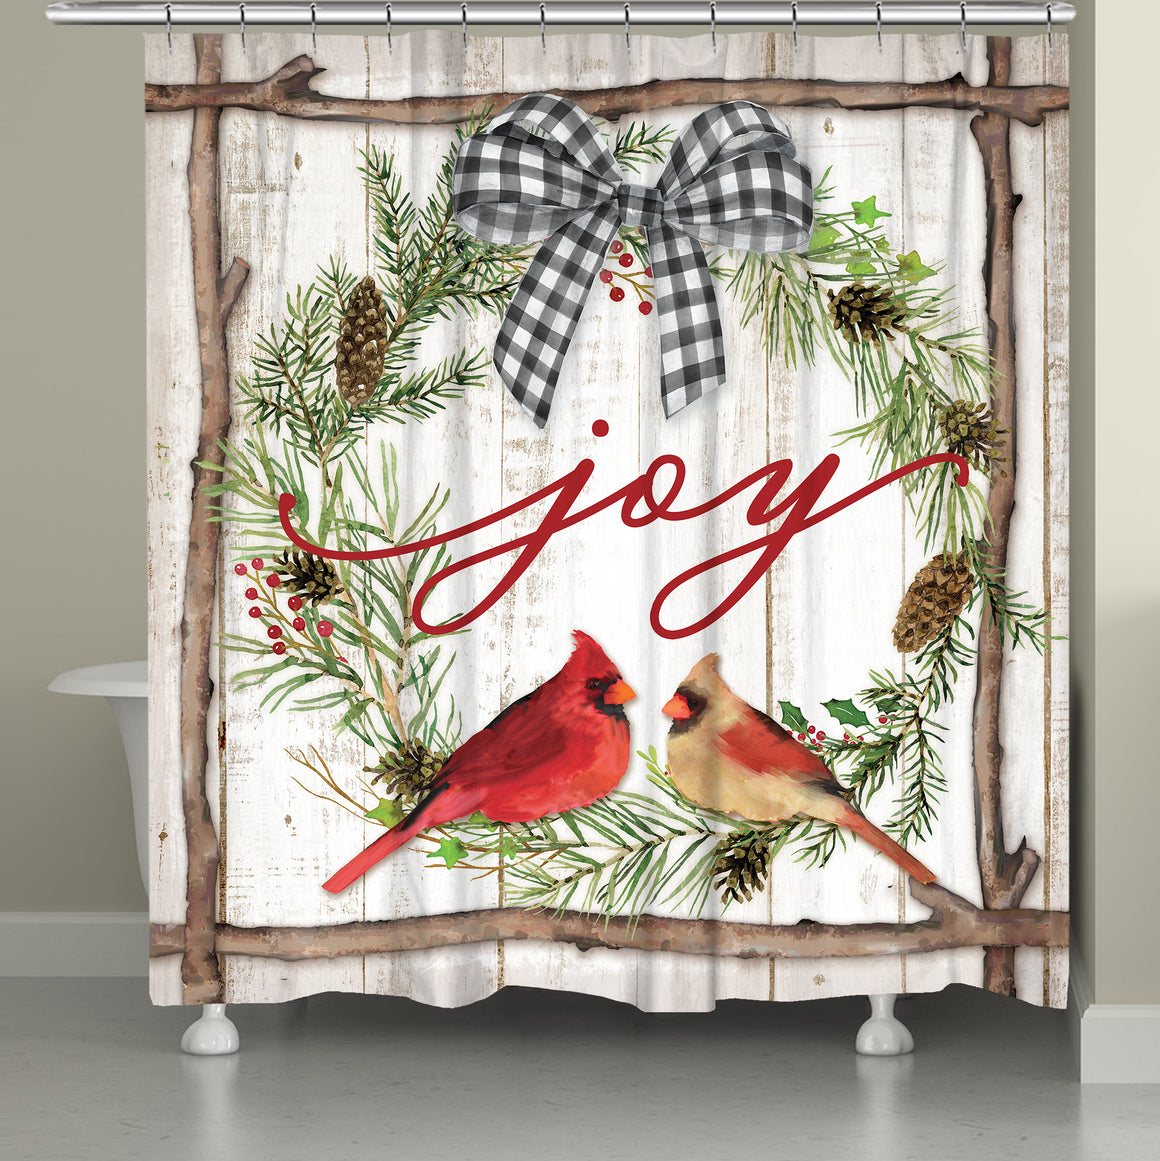 Joyful Cardinal Shower Curtain